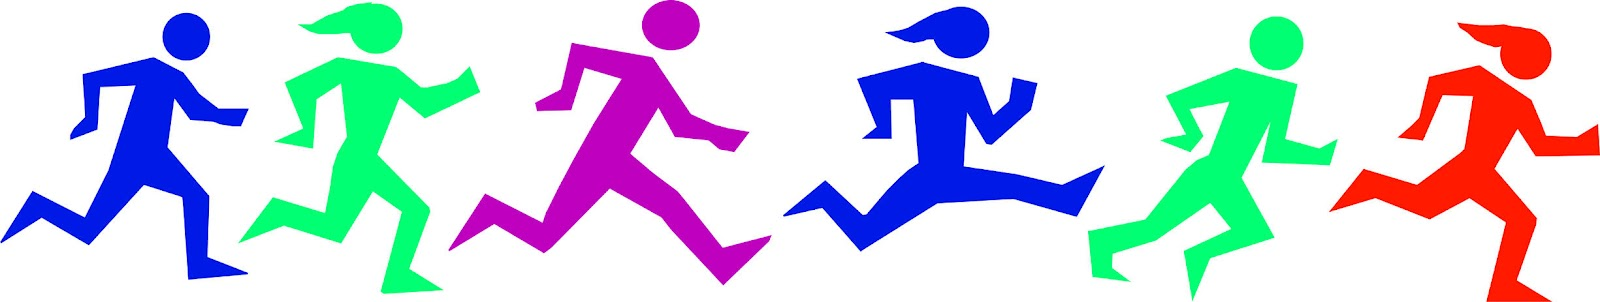 Race clipart mile run. Free k cliparts download